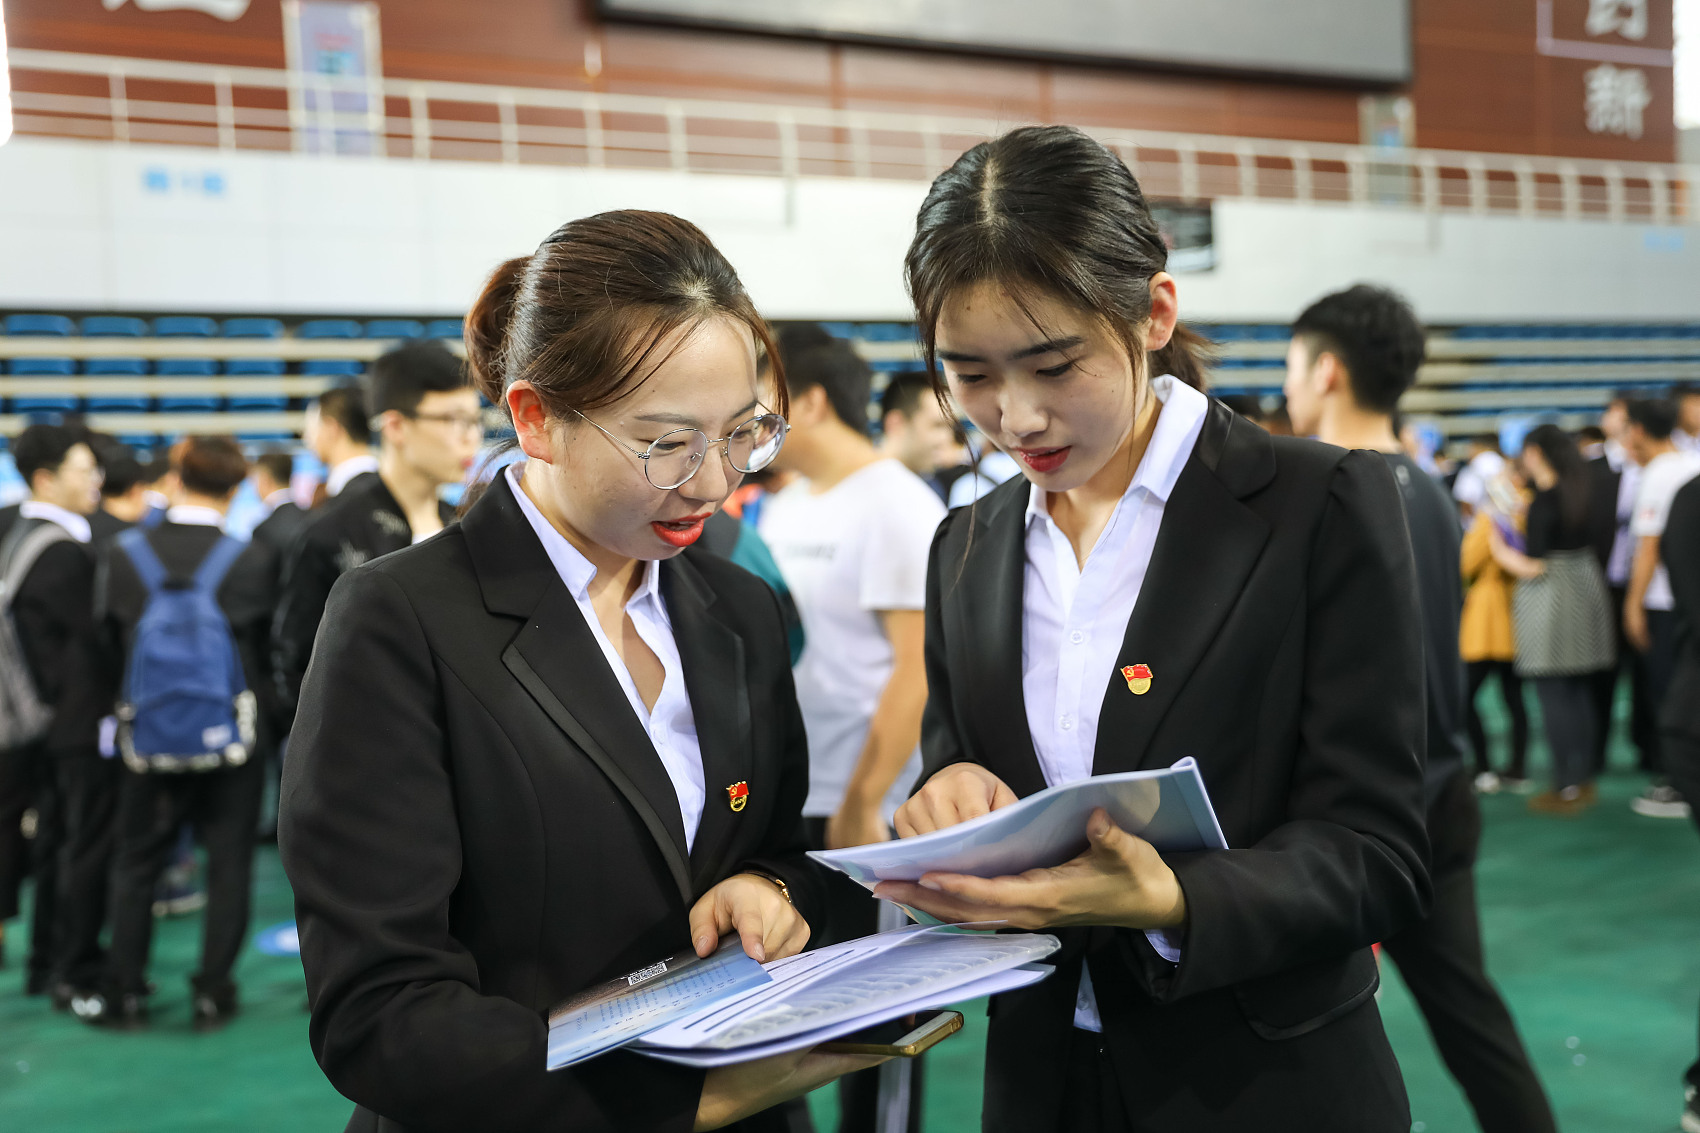 Over 70 pct respondents satisfied with their first job: survey